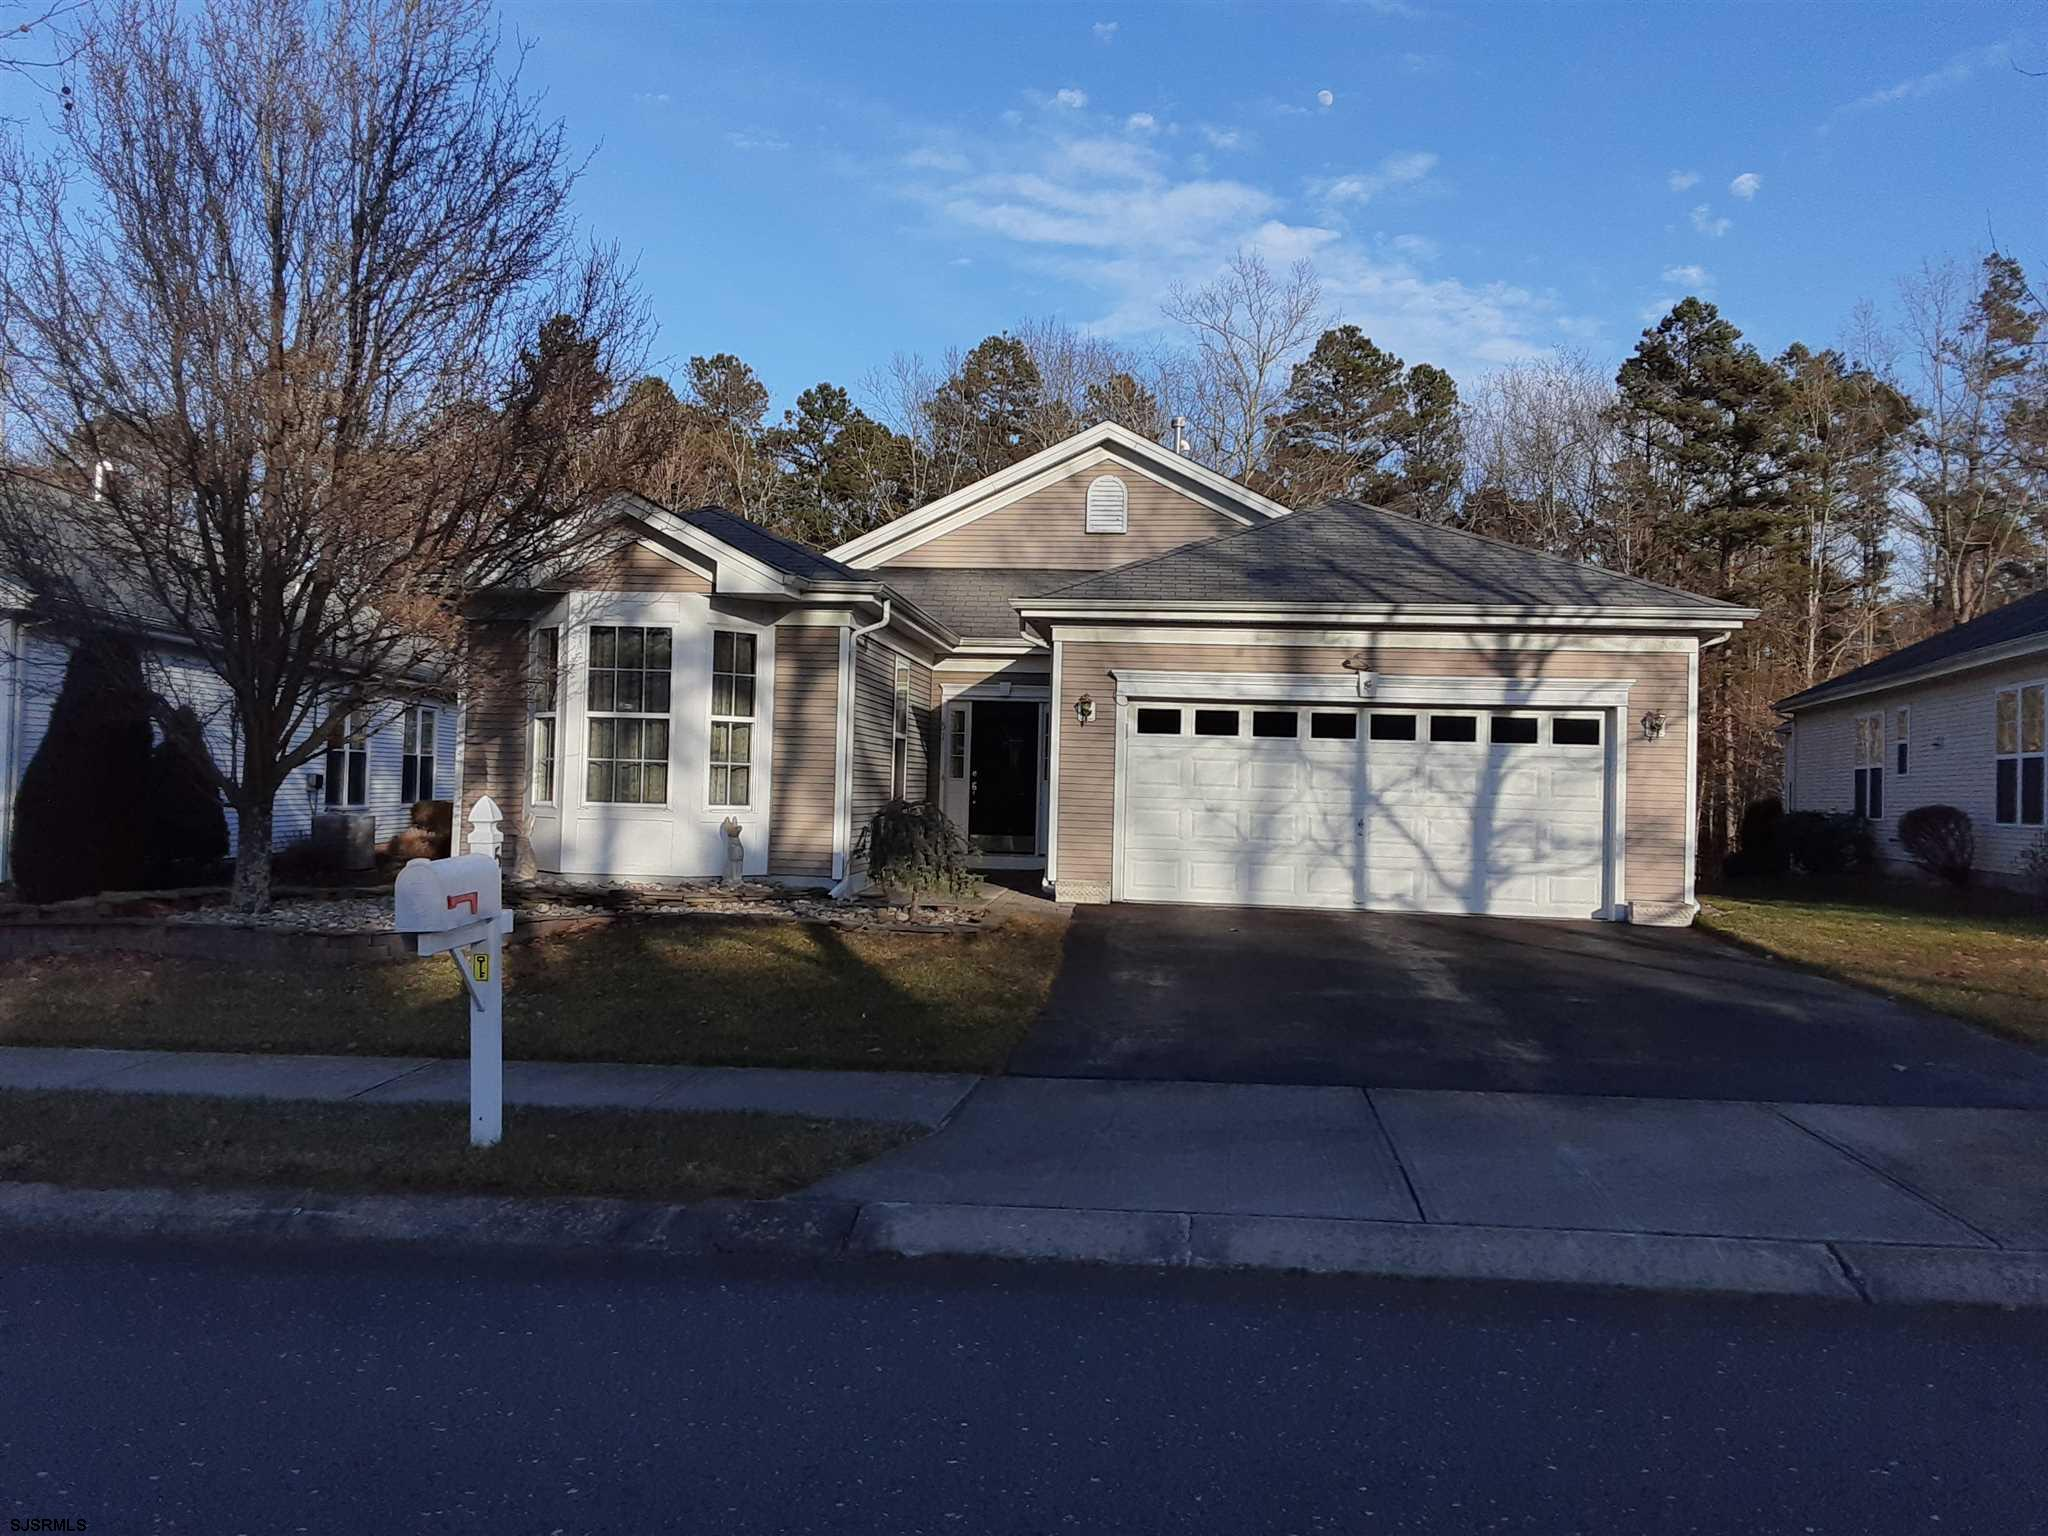 51 DERBY Dr - Picture 2